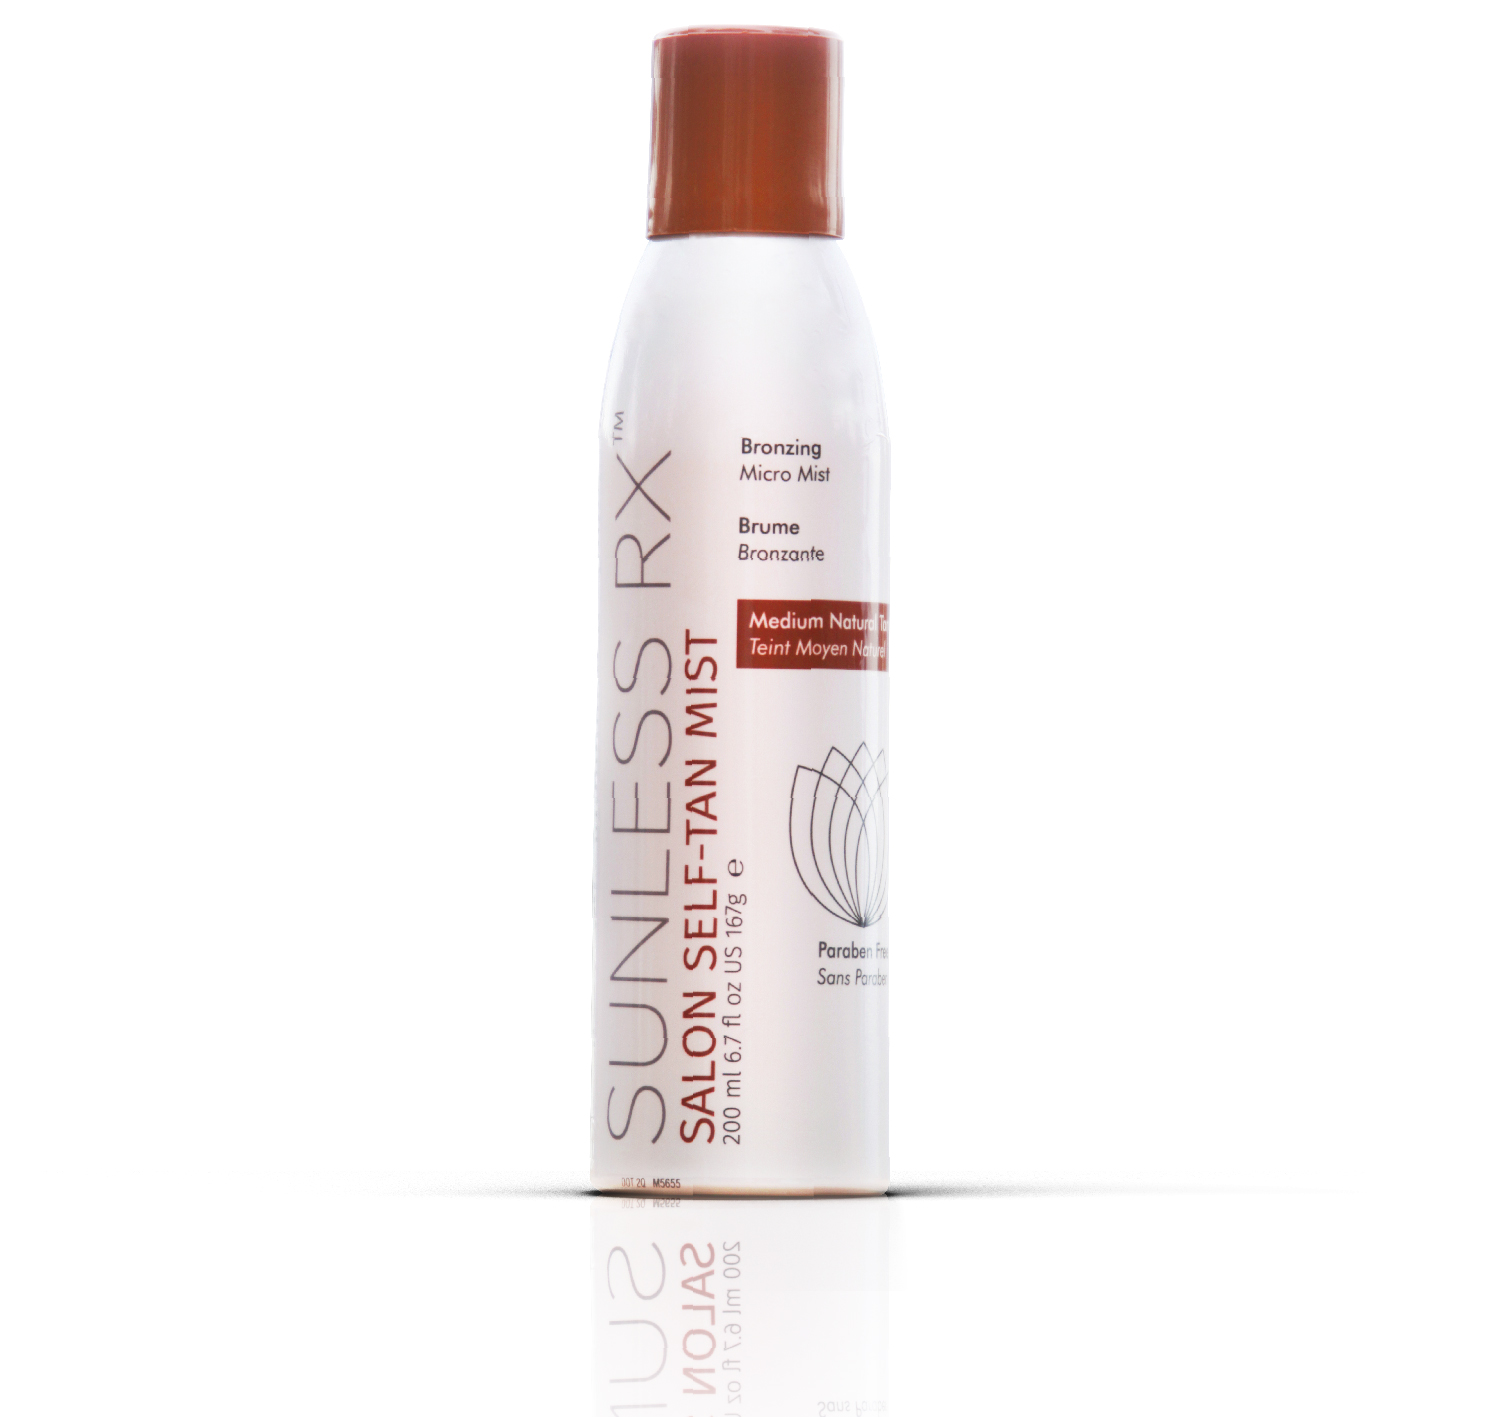 SUNLESS RX SALON SELF-TAN MIST - Our NEW environmentally safe, professional self-tan mist not only creates the perfect bronze glow but does it without use of any dangerous toxic fumes. By using only compressed natural air with safe non cancer-causing chemicals.